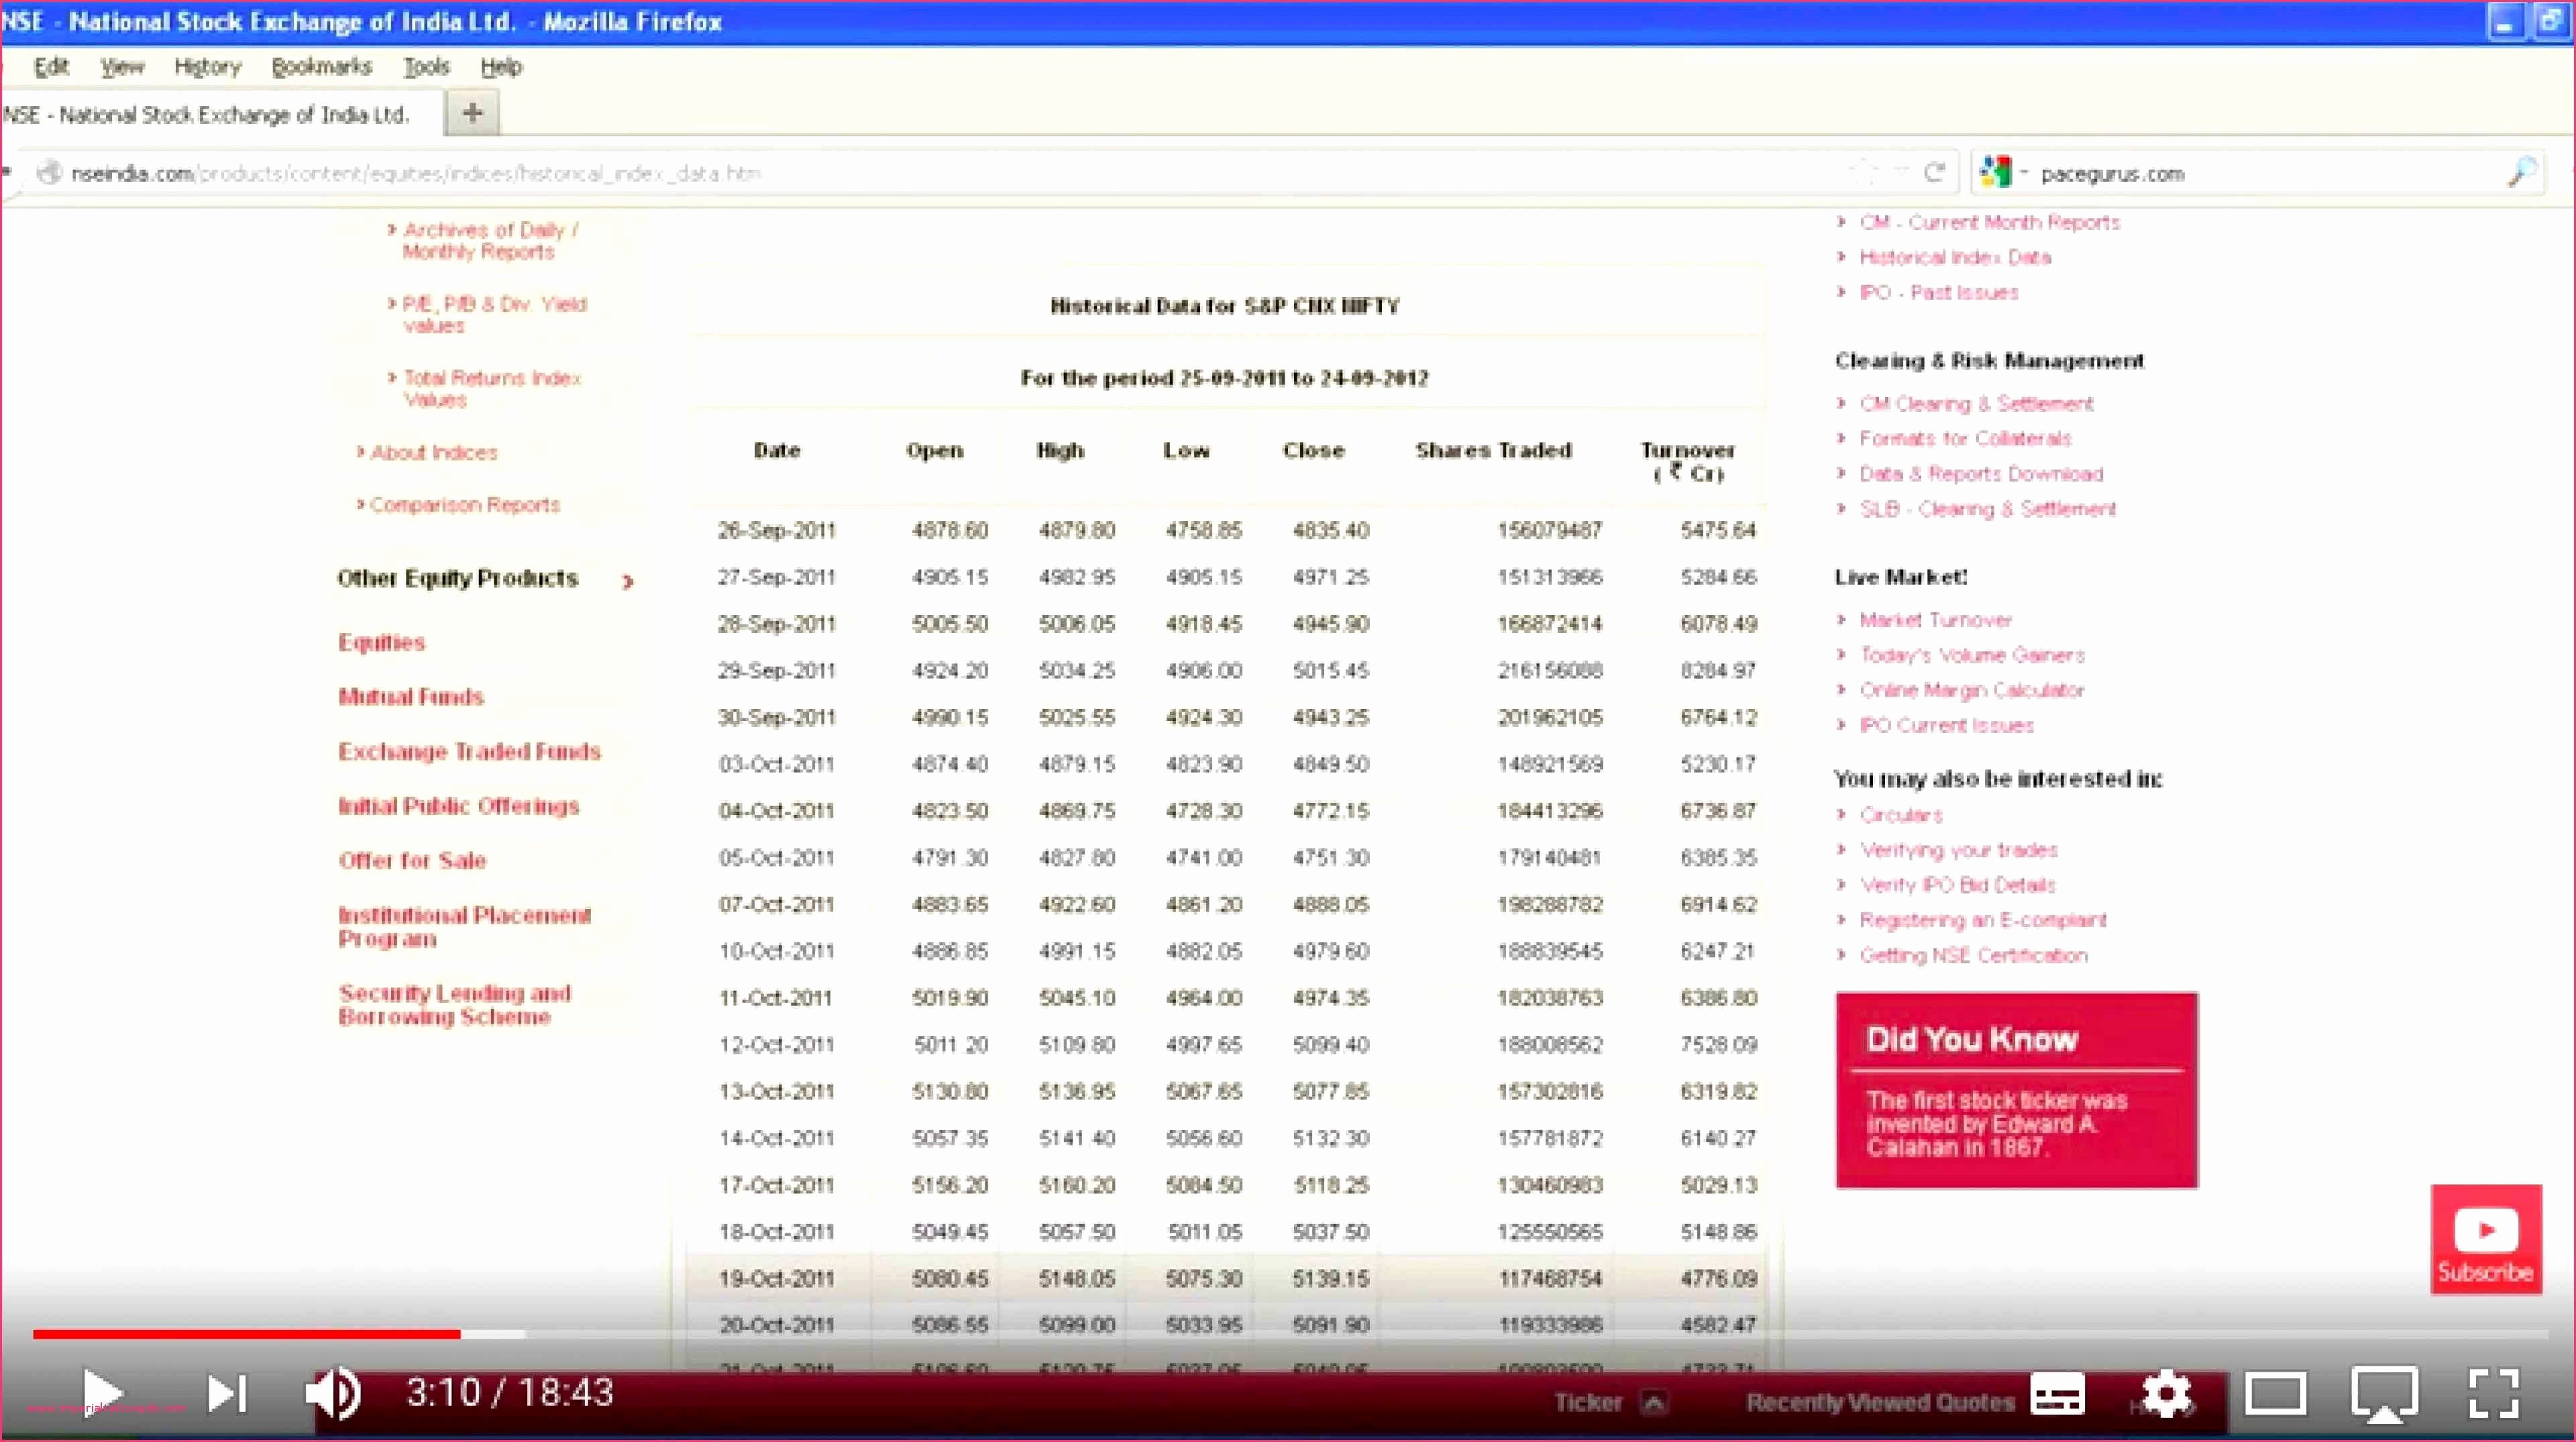 Itemized Spreadsheet With Regard To Itemized Spreadsheet Template Lovely Itemized Expenses Spreadsheet